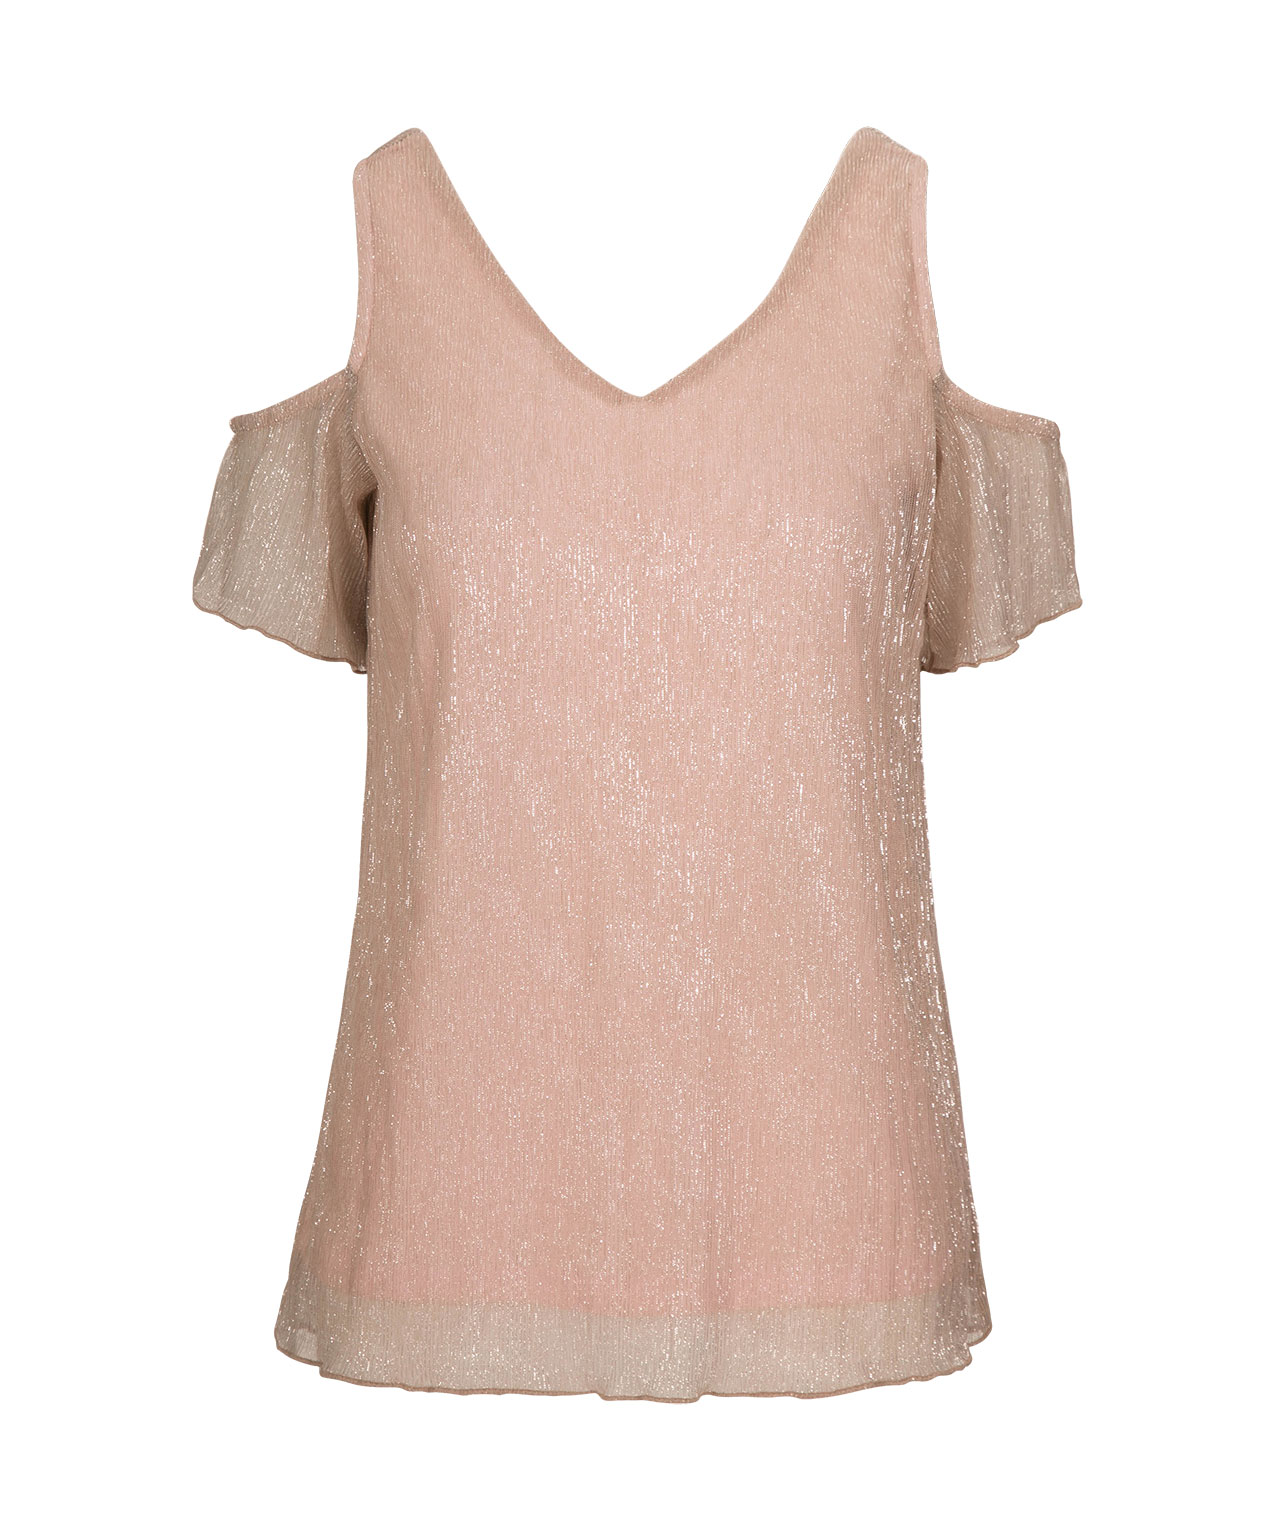 fdf807e69fe1f3 Cold Shoulder Shimmer Top